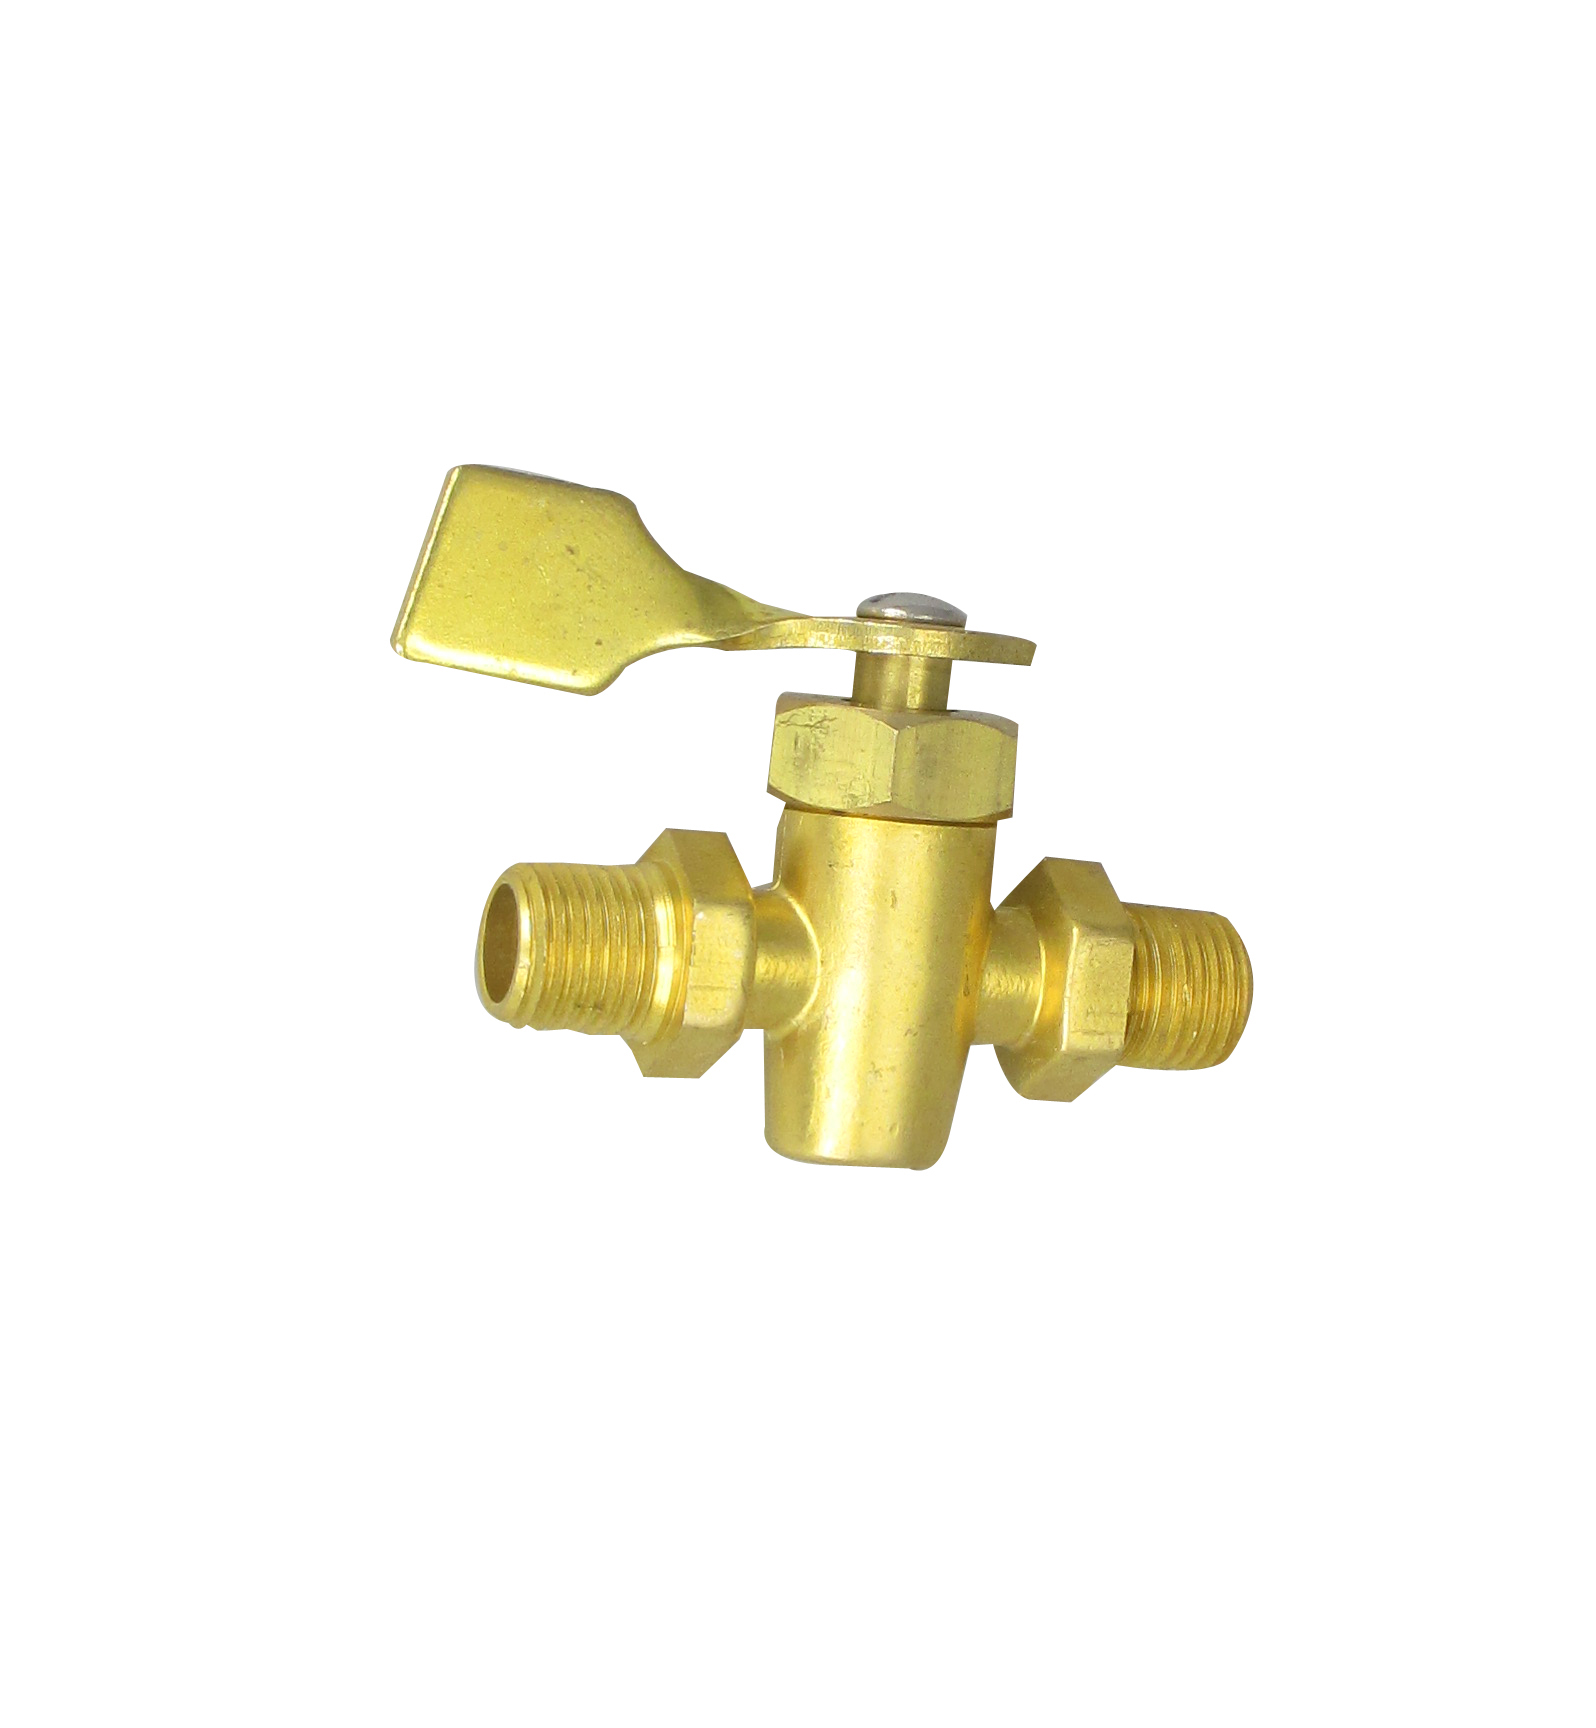 "Boat Fuel Tank 2 Way On-Off Horizontal Shut Off Valve 3/8"" NPT"